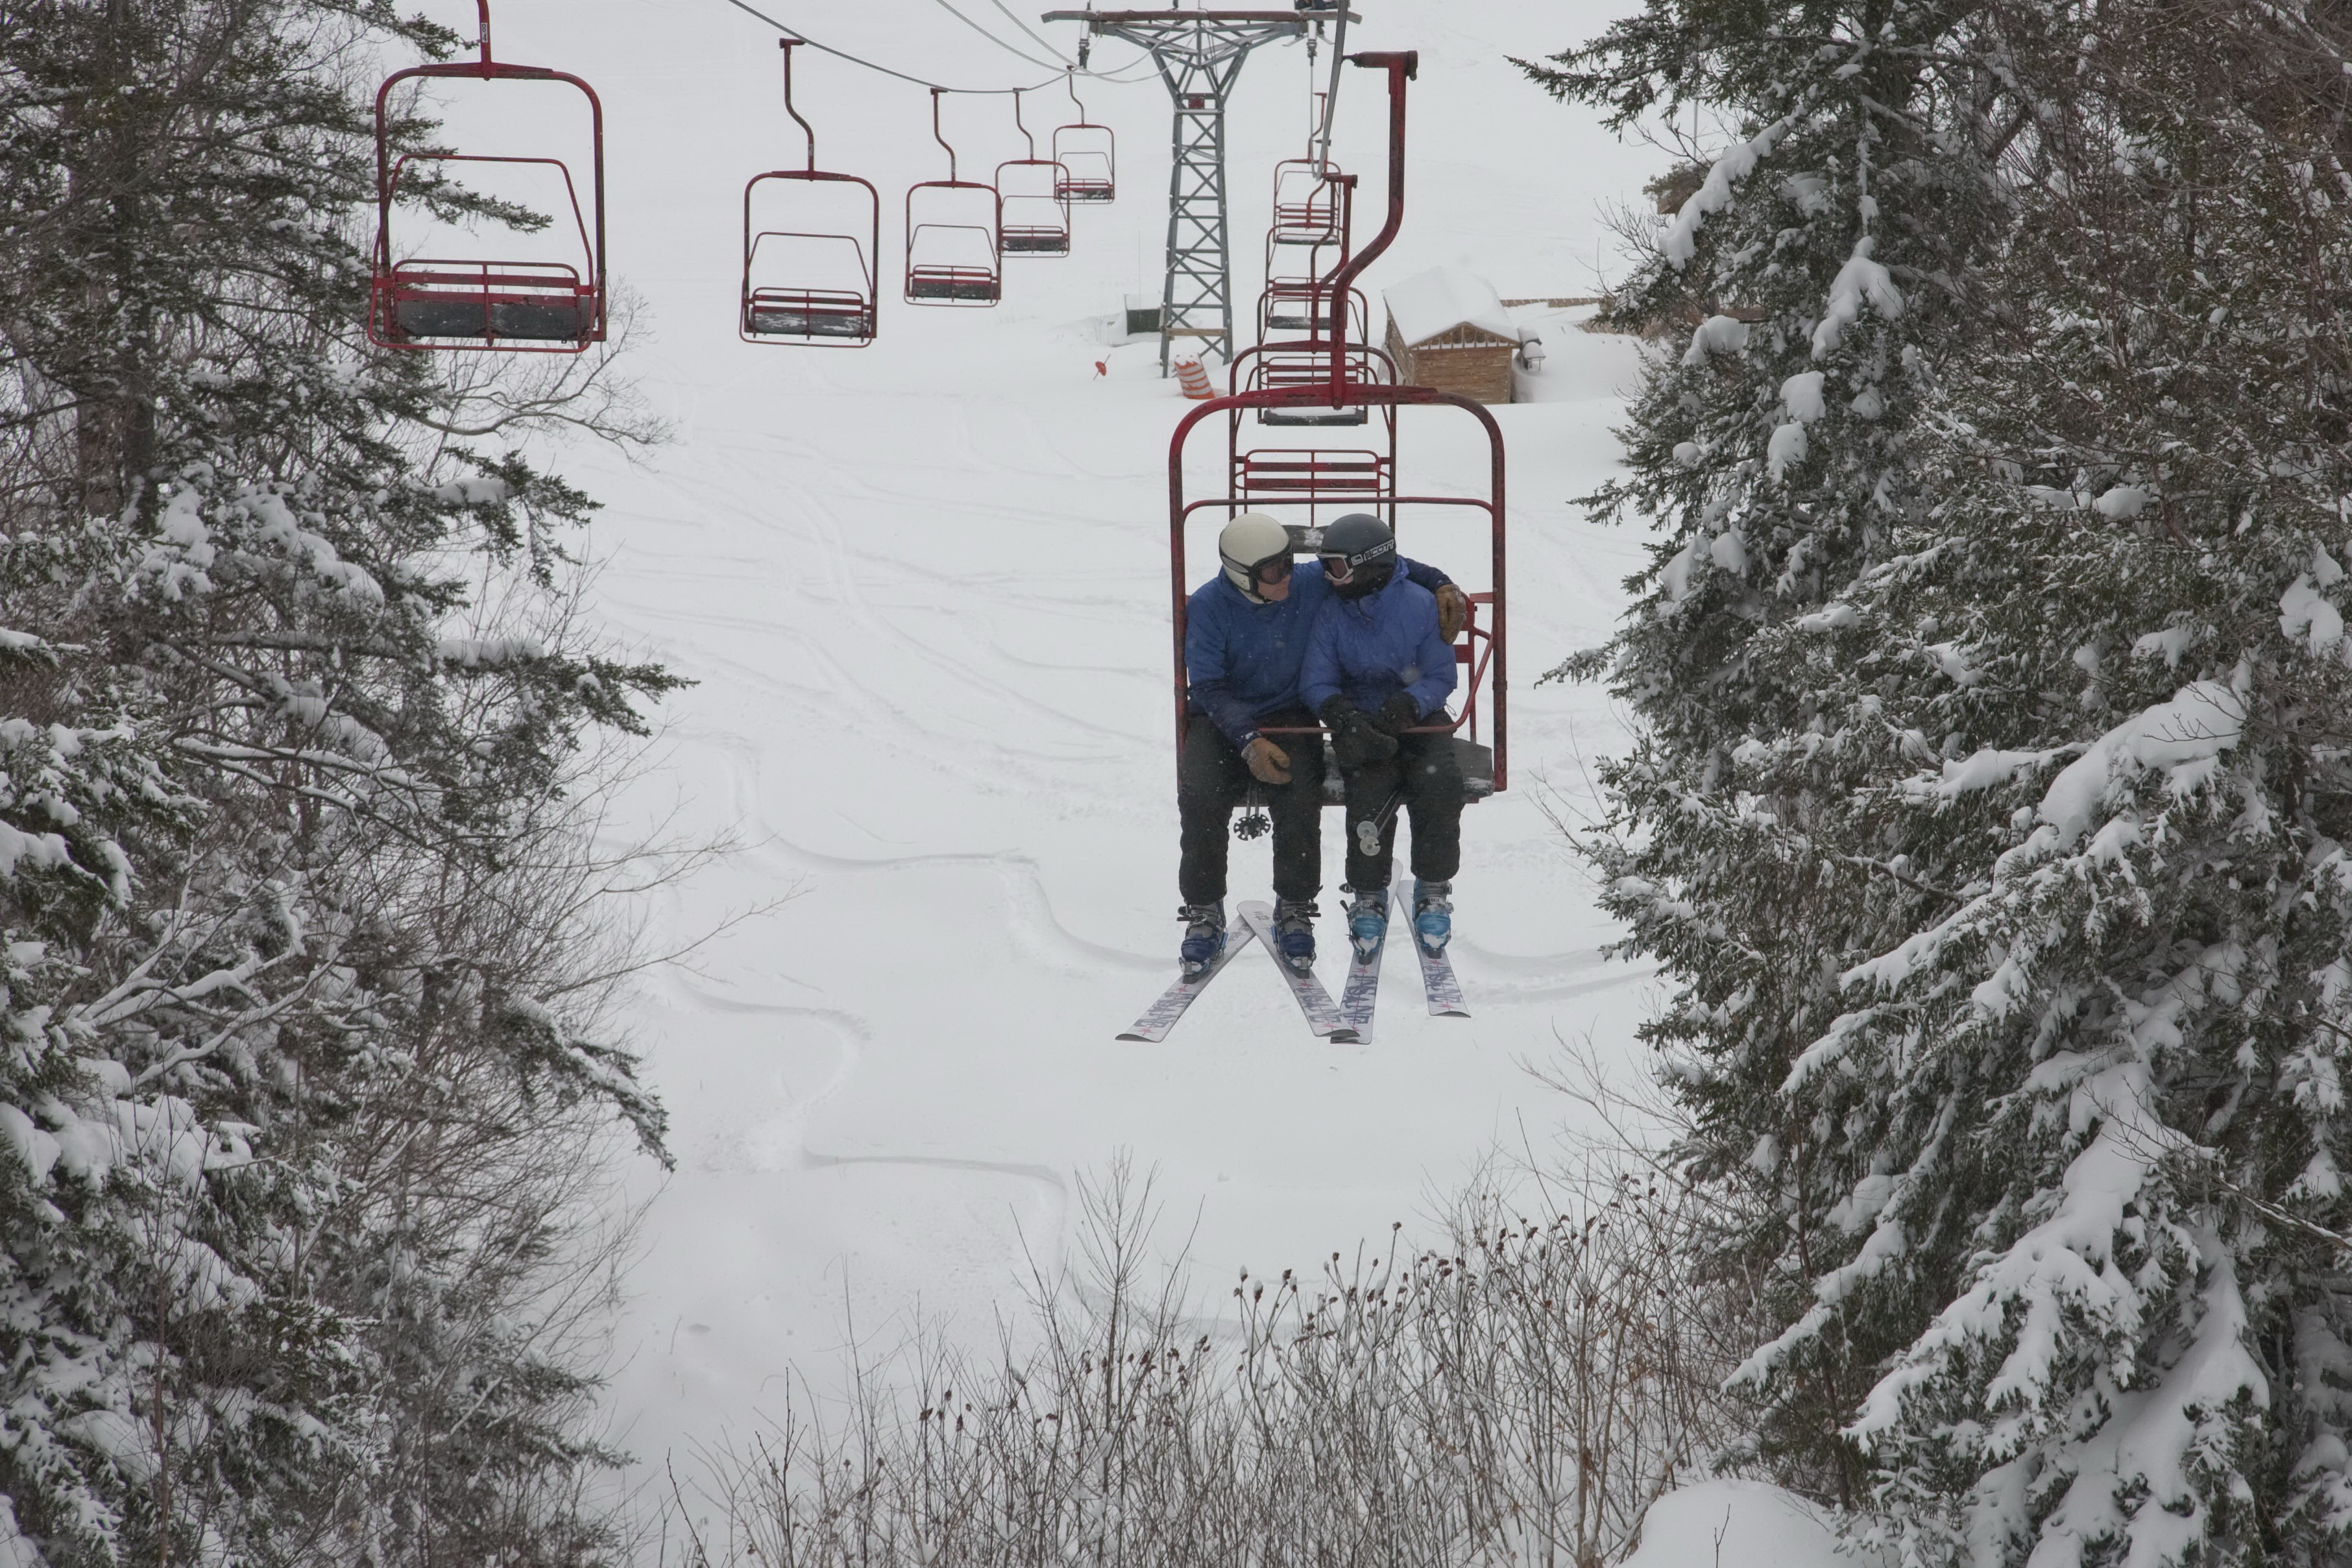 Best Chairlift Pick Up Lines: Cupid on Skis